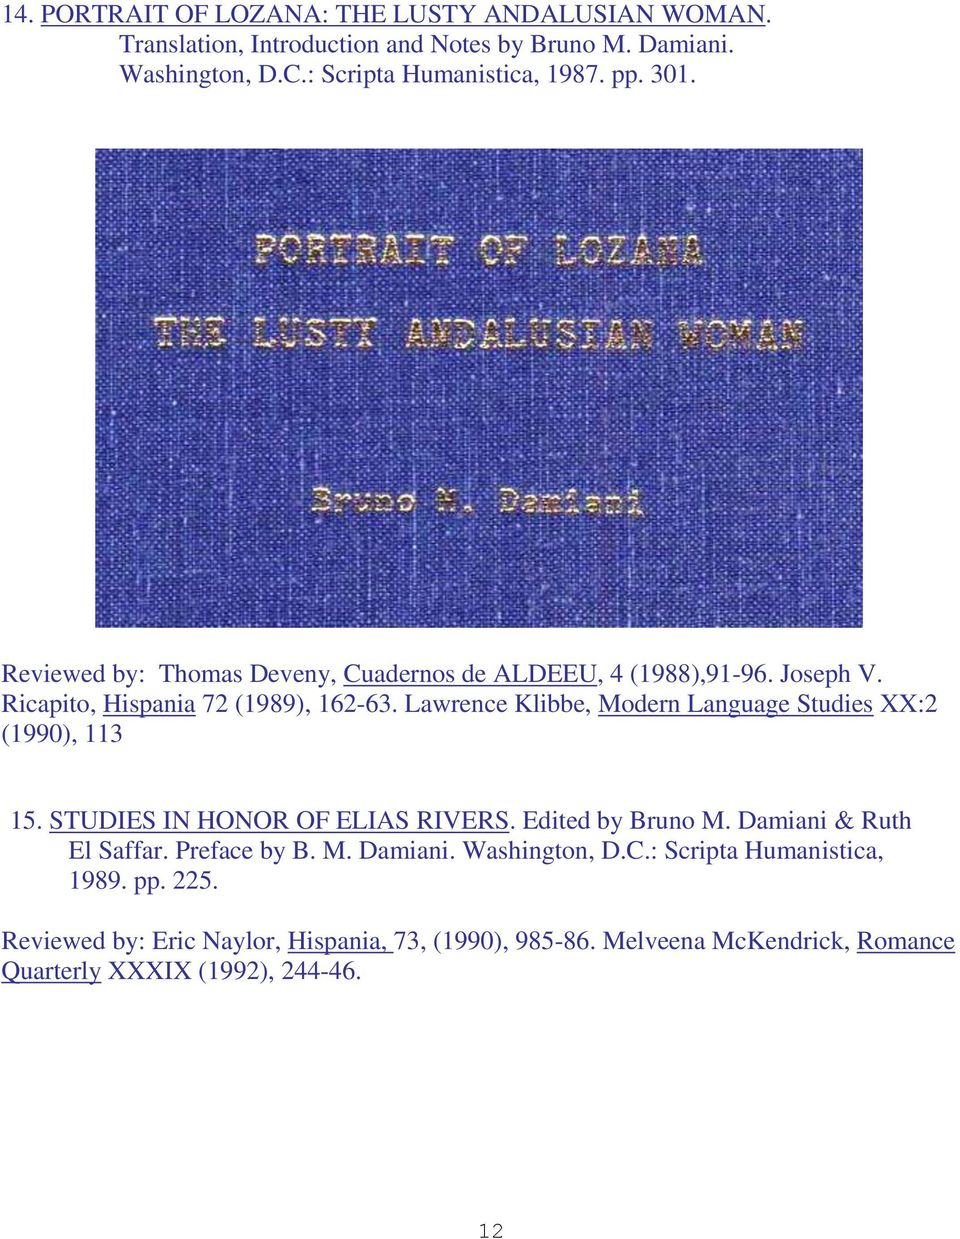 Lawrence Klibbe, Modern Language Studies XX:2 (1990), 113 15. STUDIES IN HONOR OF ELIAS RIVERS. Edited by Bruno M. Damiani & Ruth El Saffar. Preface by B.